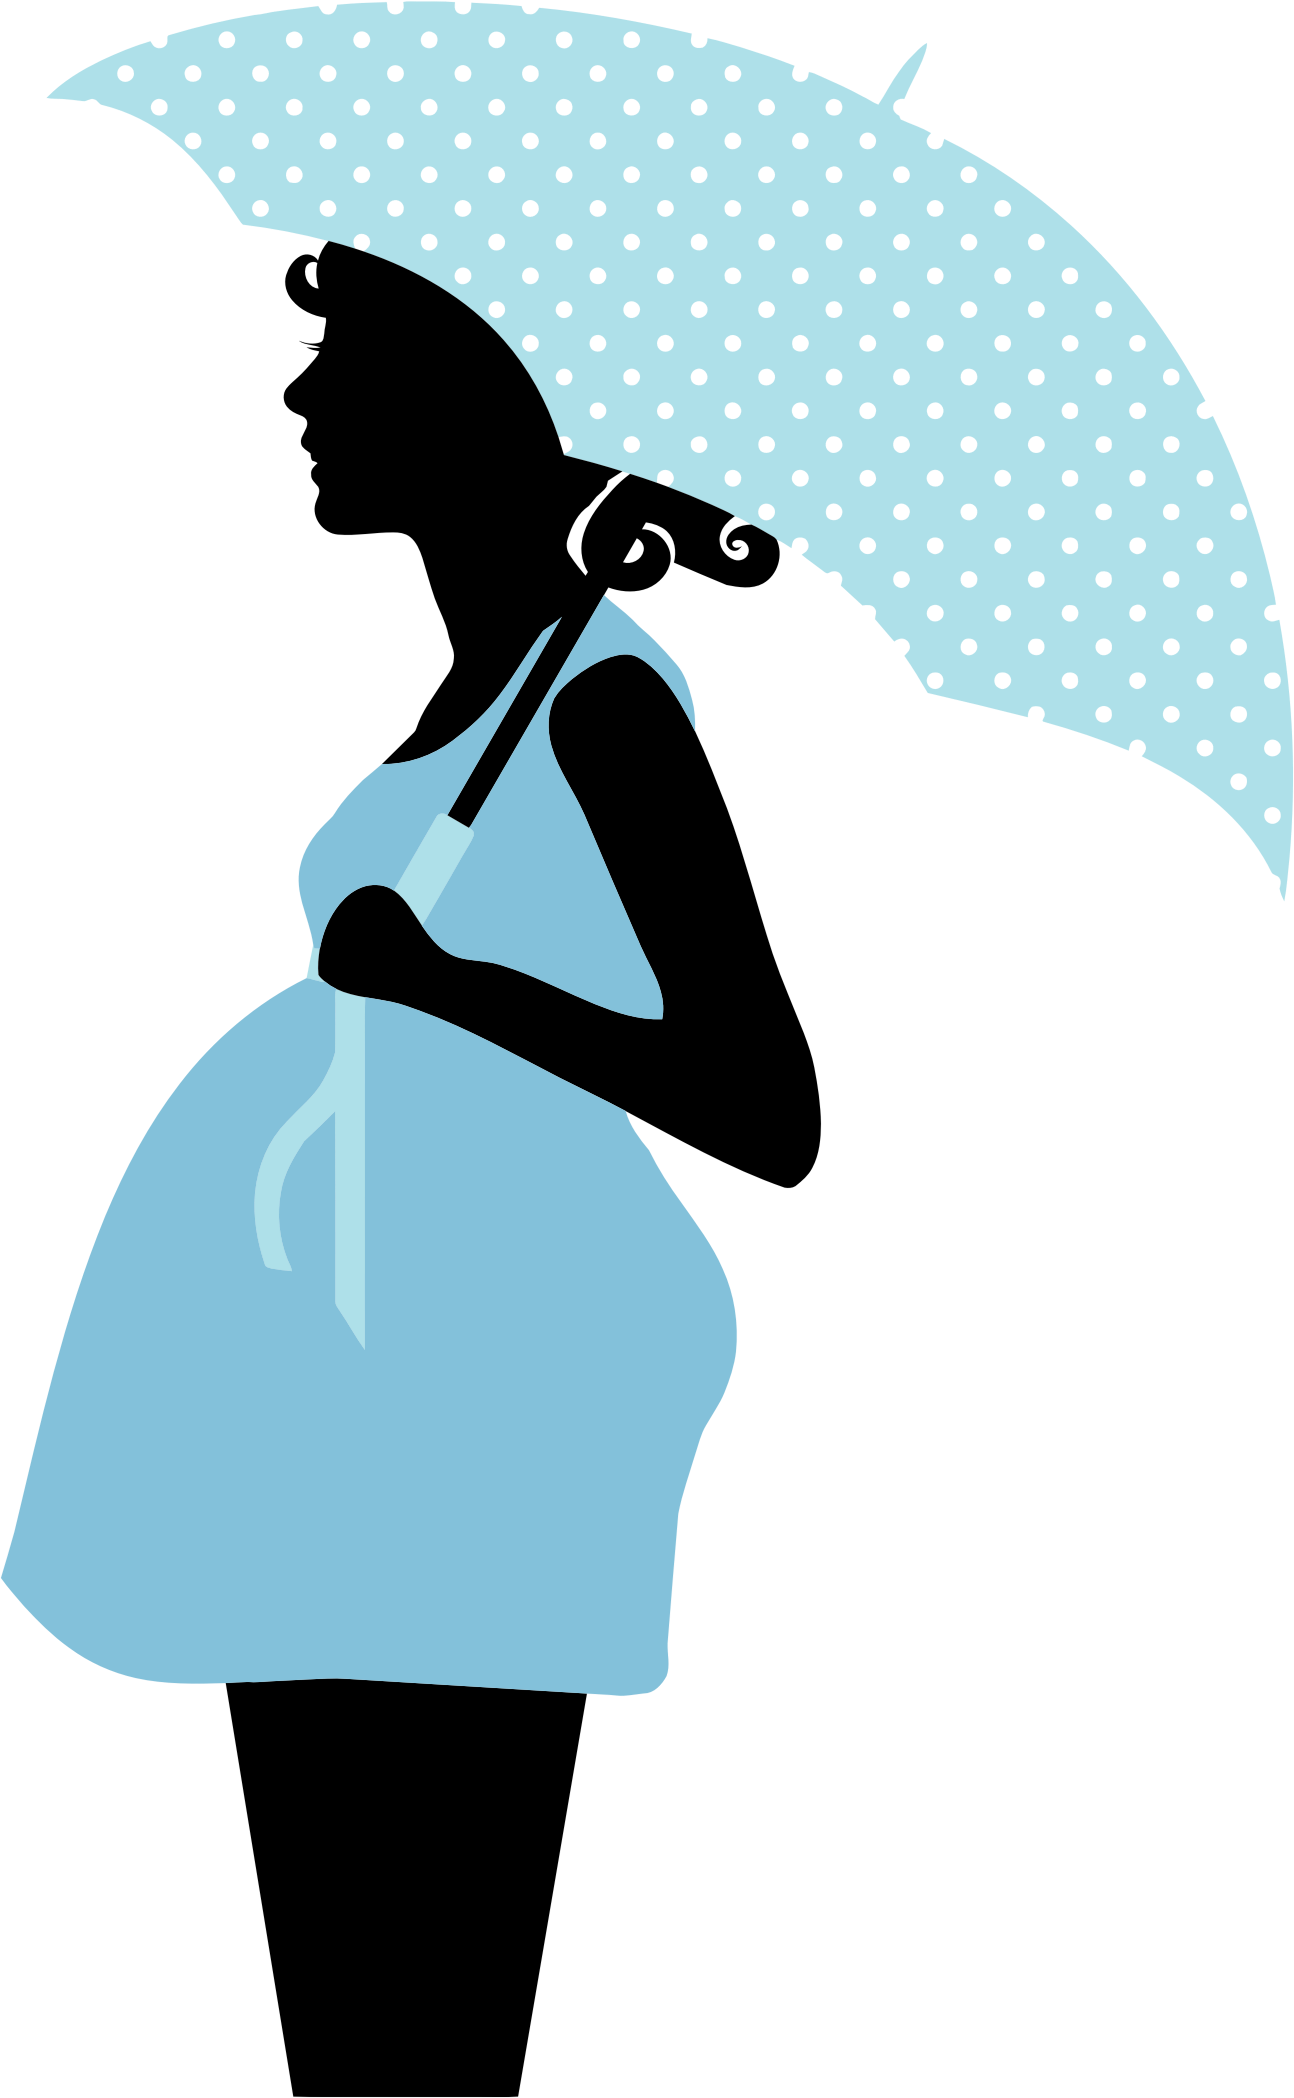 Woman illustration icons png. Lady clipart pregnant